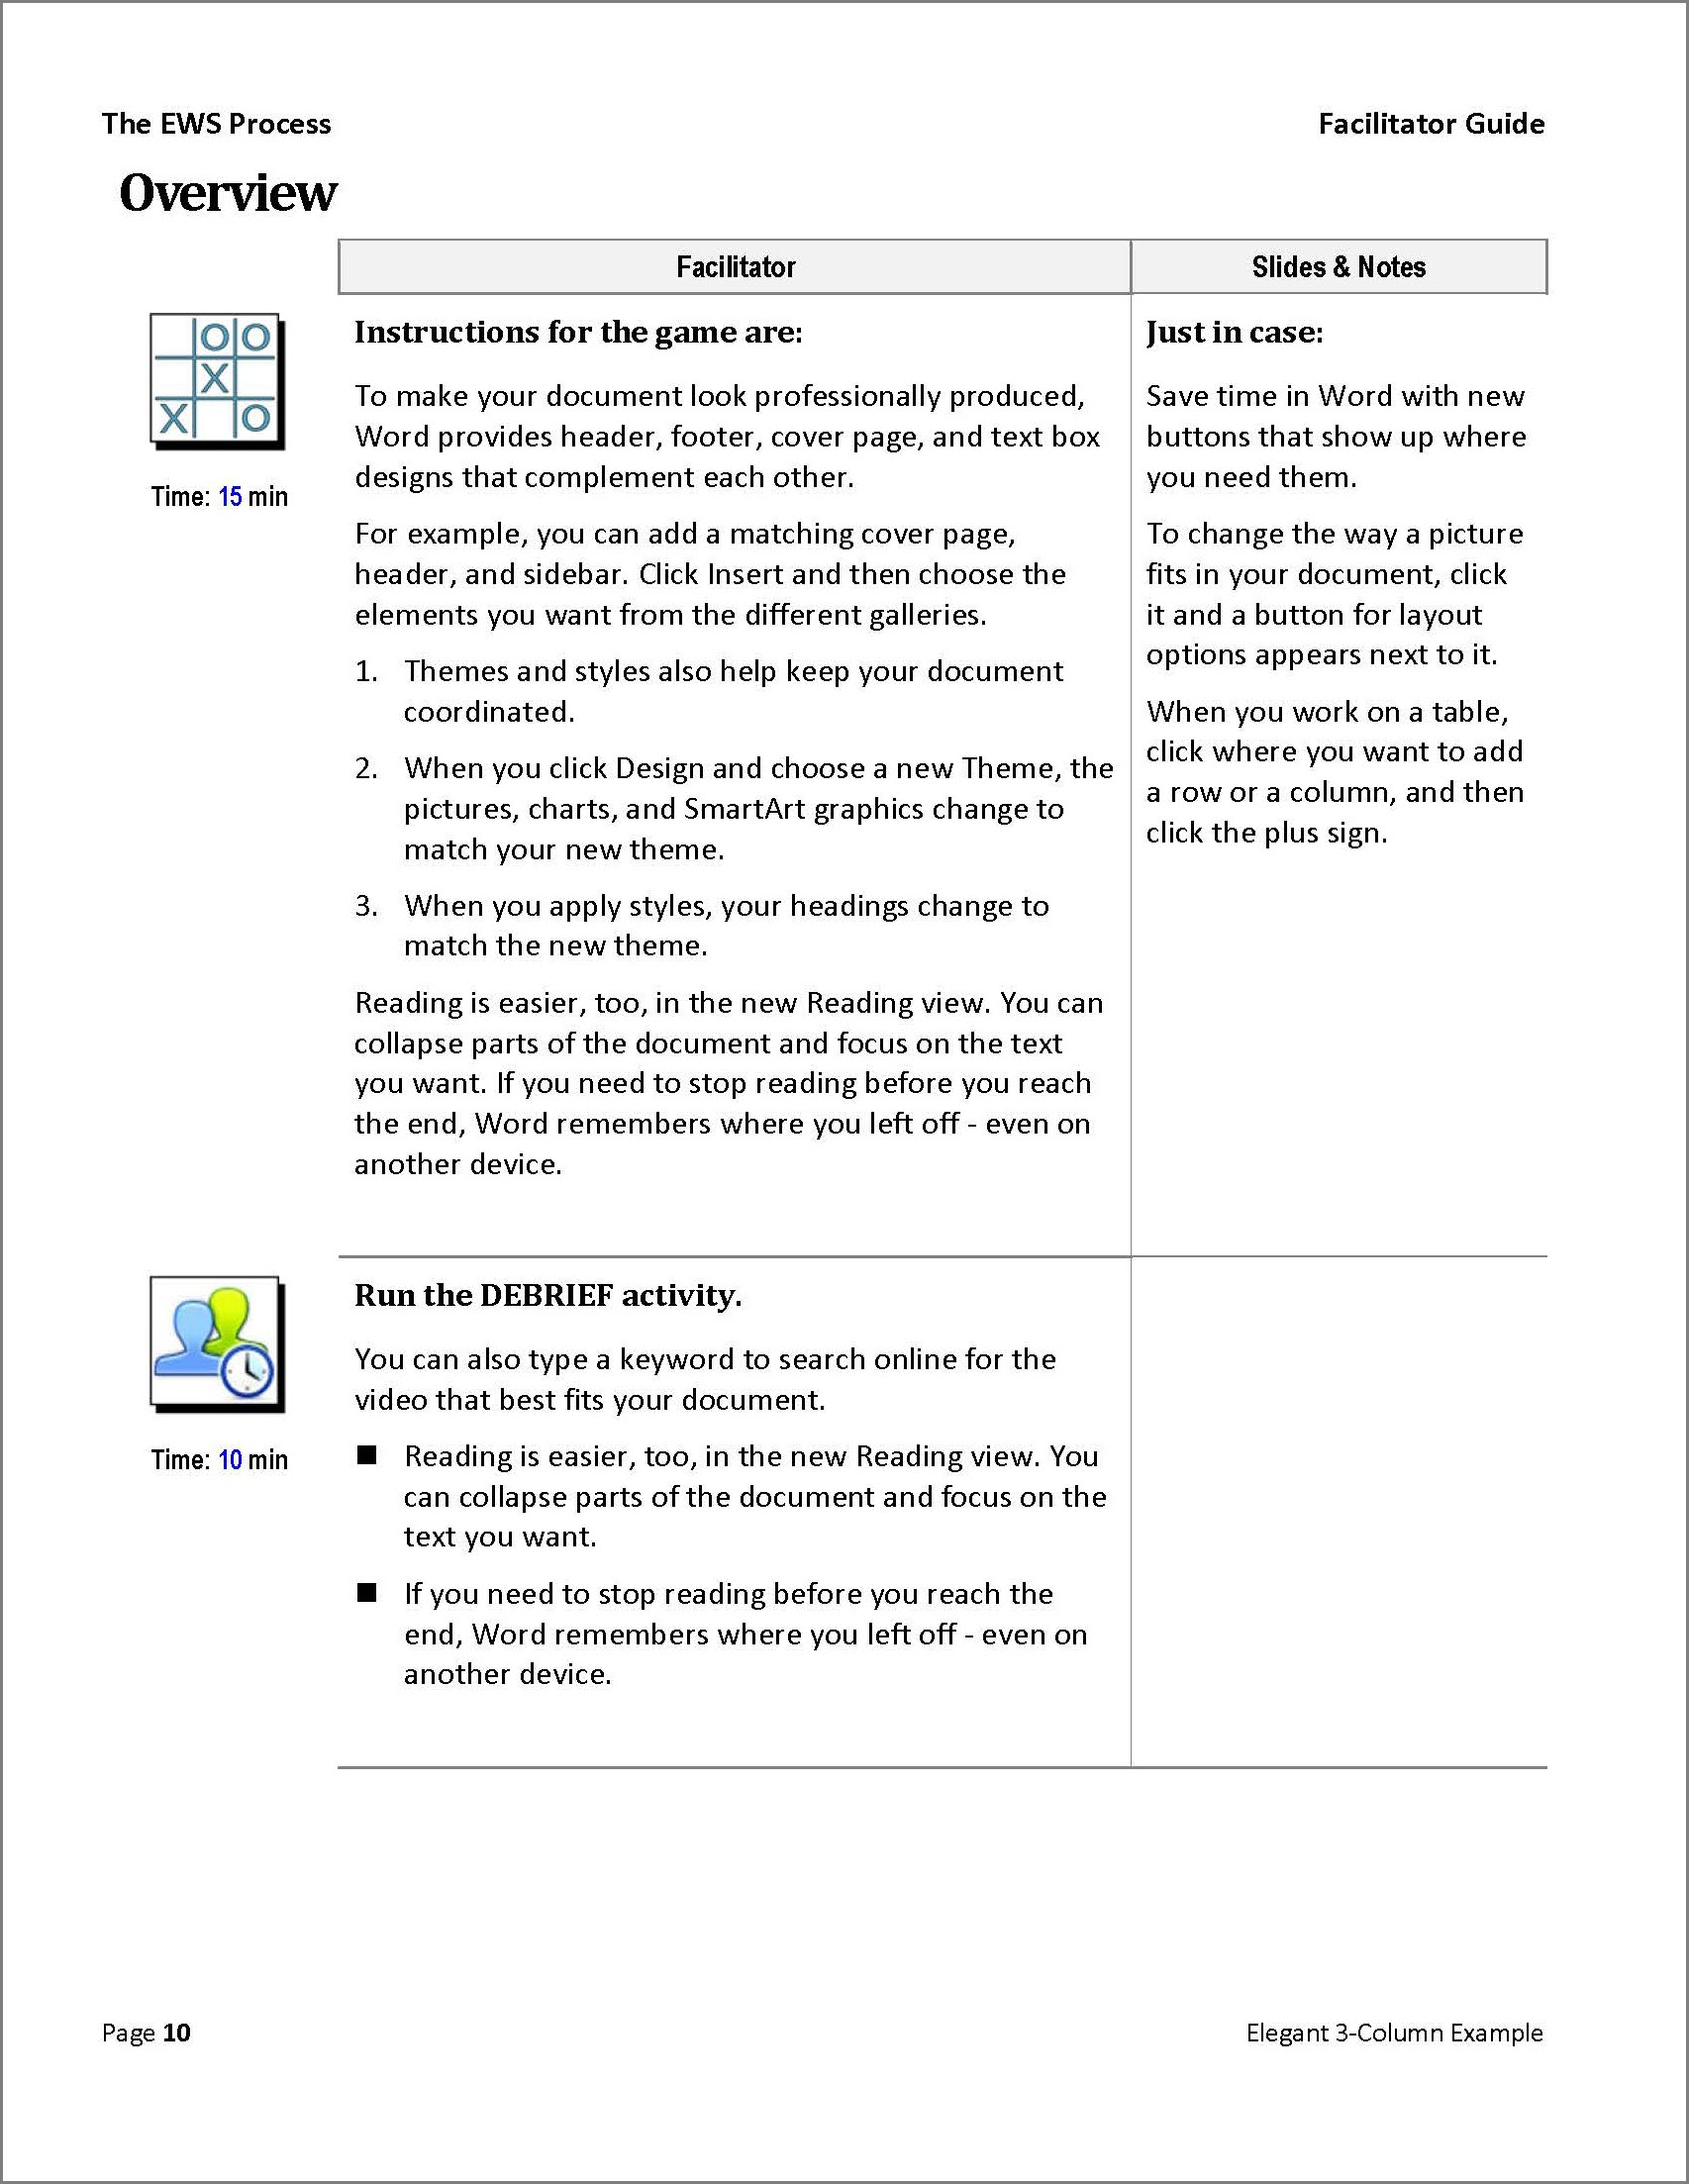 Elegant 3-Column Example Leader Guide_Page_18.jpg